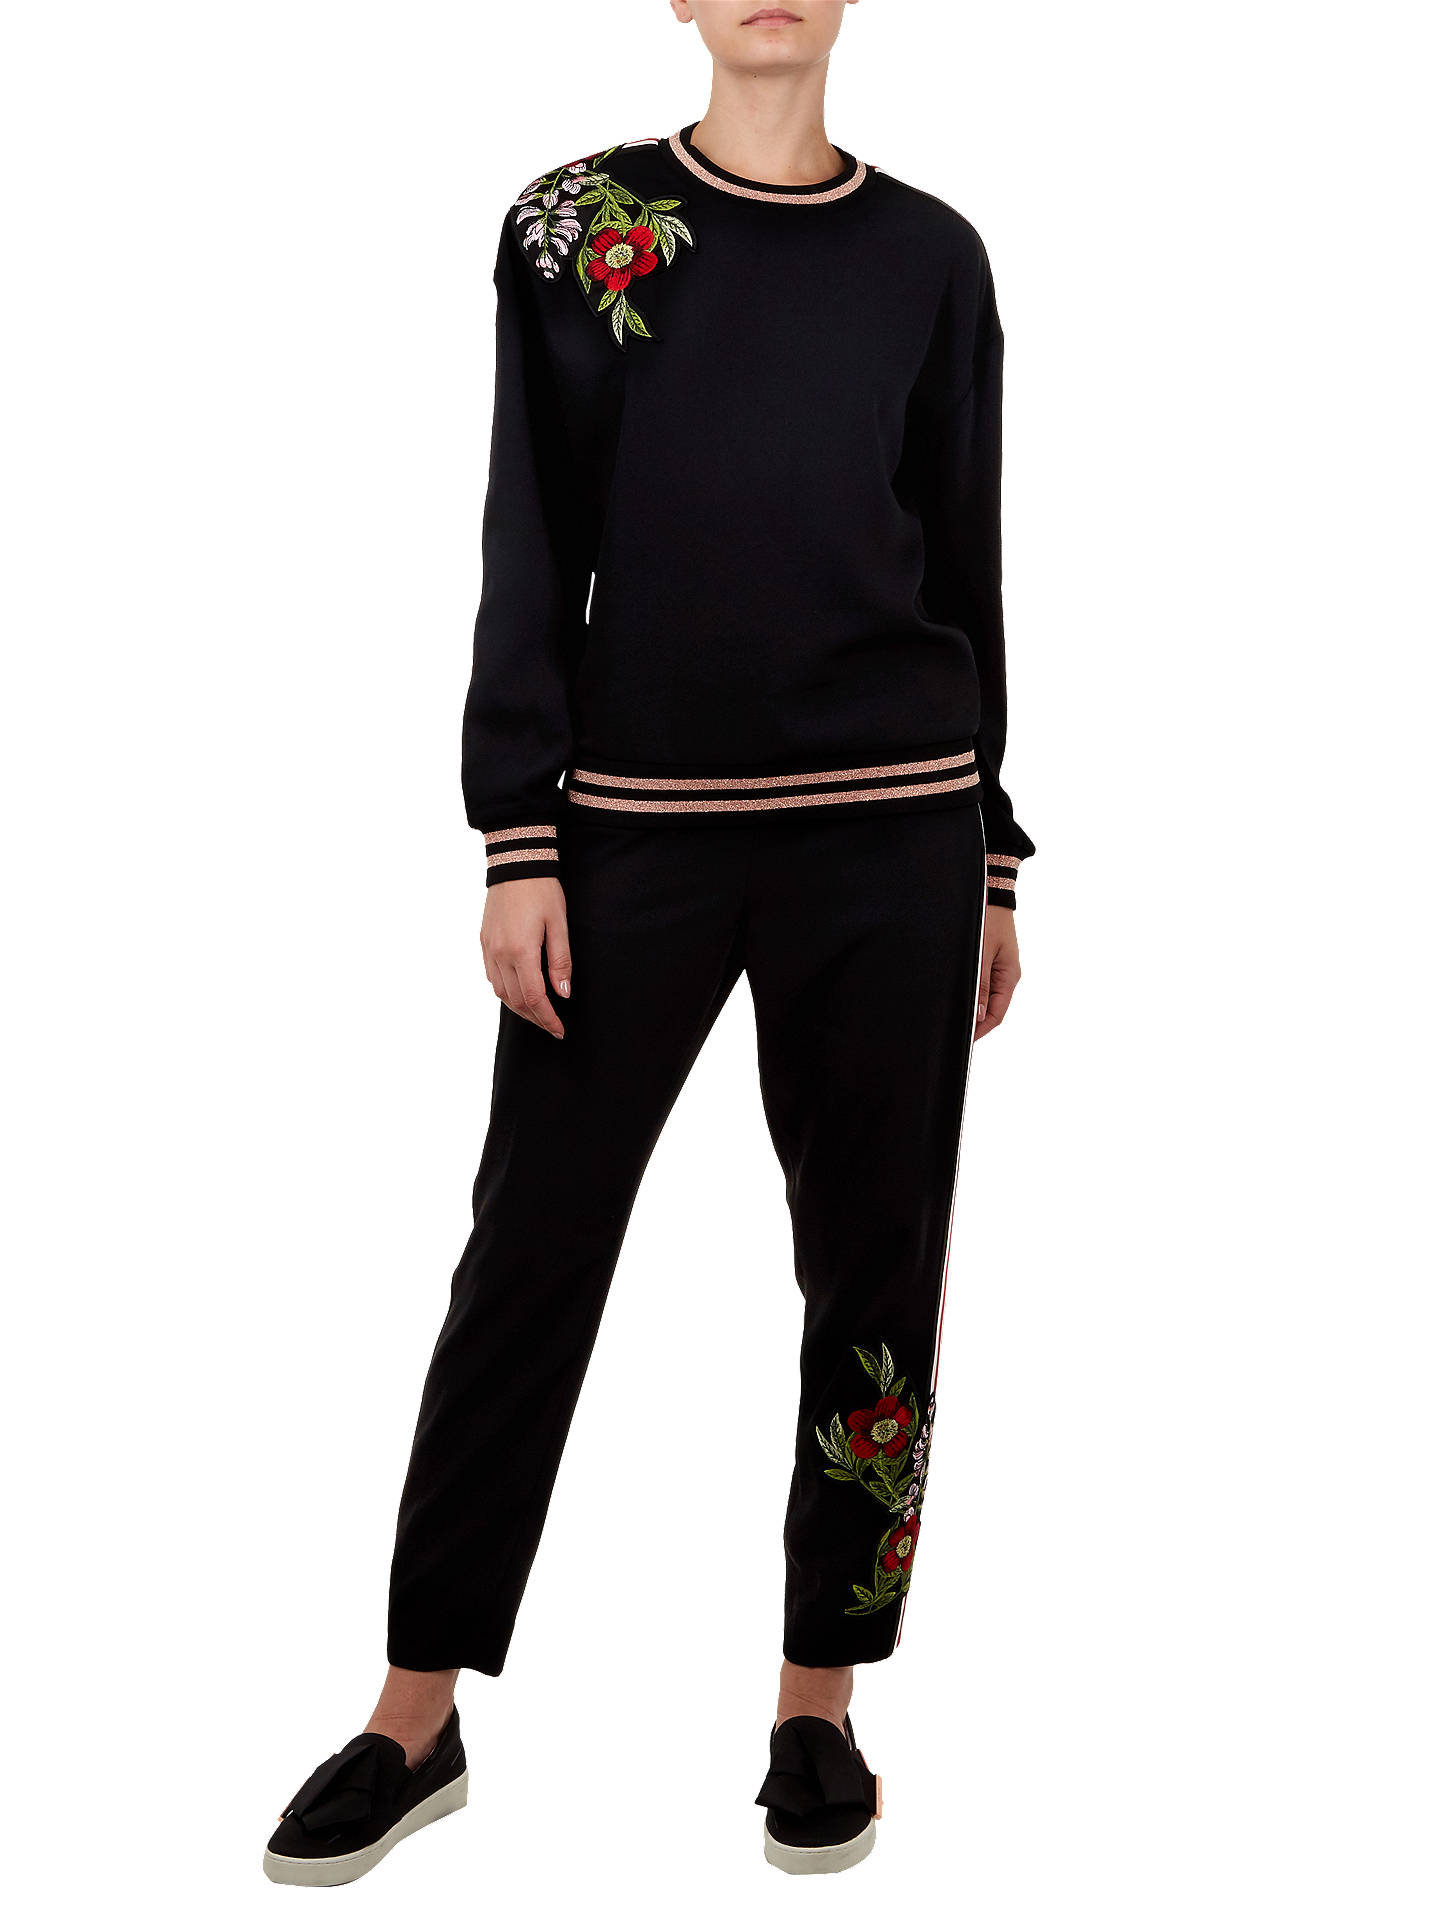 BuyTed Baker Maddeyy Embroidered Trim Jumper, Black, 3 Online at johnlewis.com